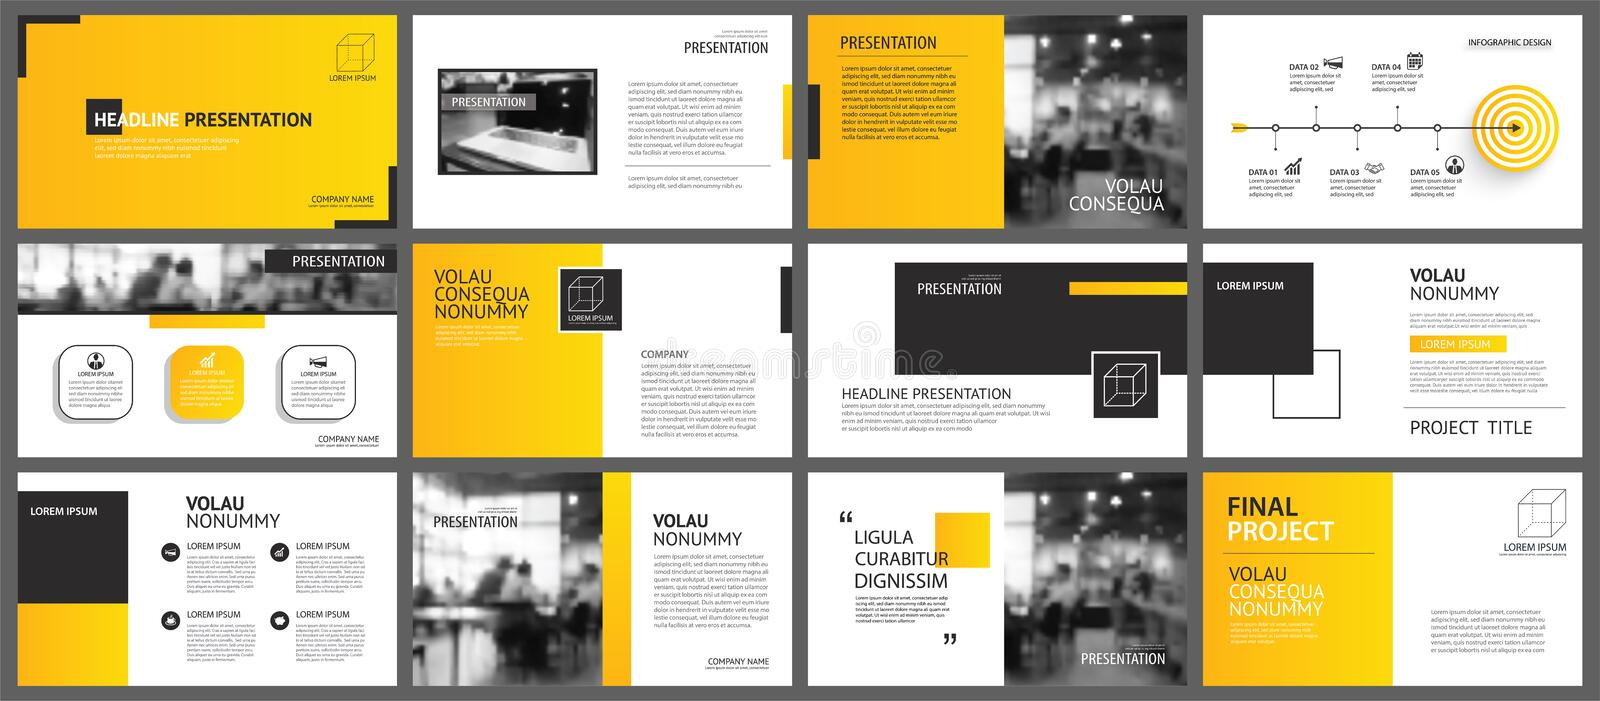 Presentation and slide layout background. Design yellow and orange gradient geometric template. Use for business annual report, vector illustration